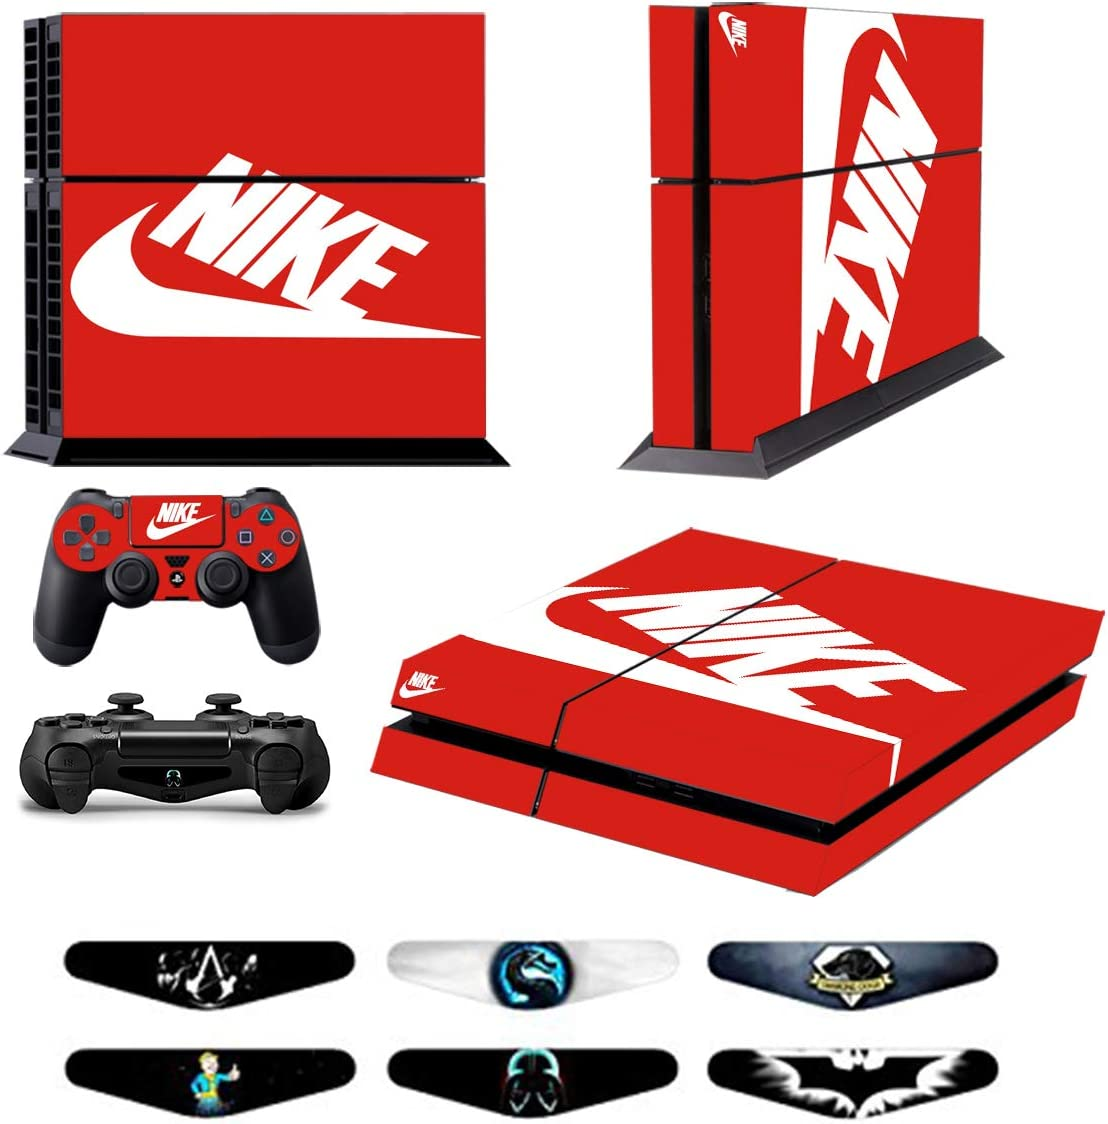 752b5c9d659b Amazon.com  Skins for PS4 Controller - Decals for Playstation 4 ...